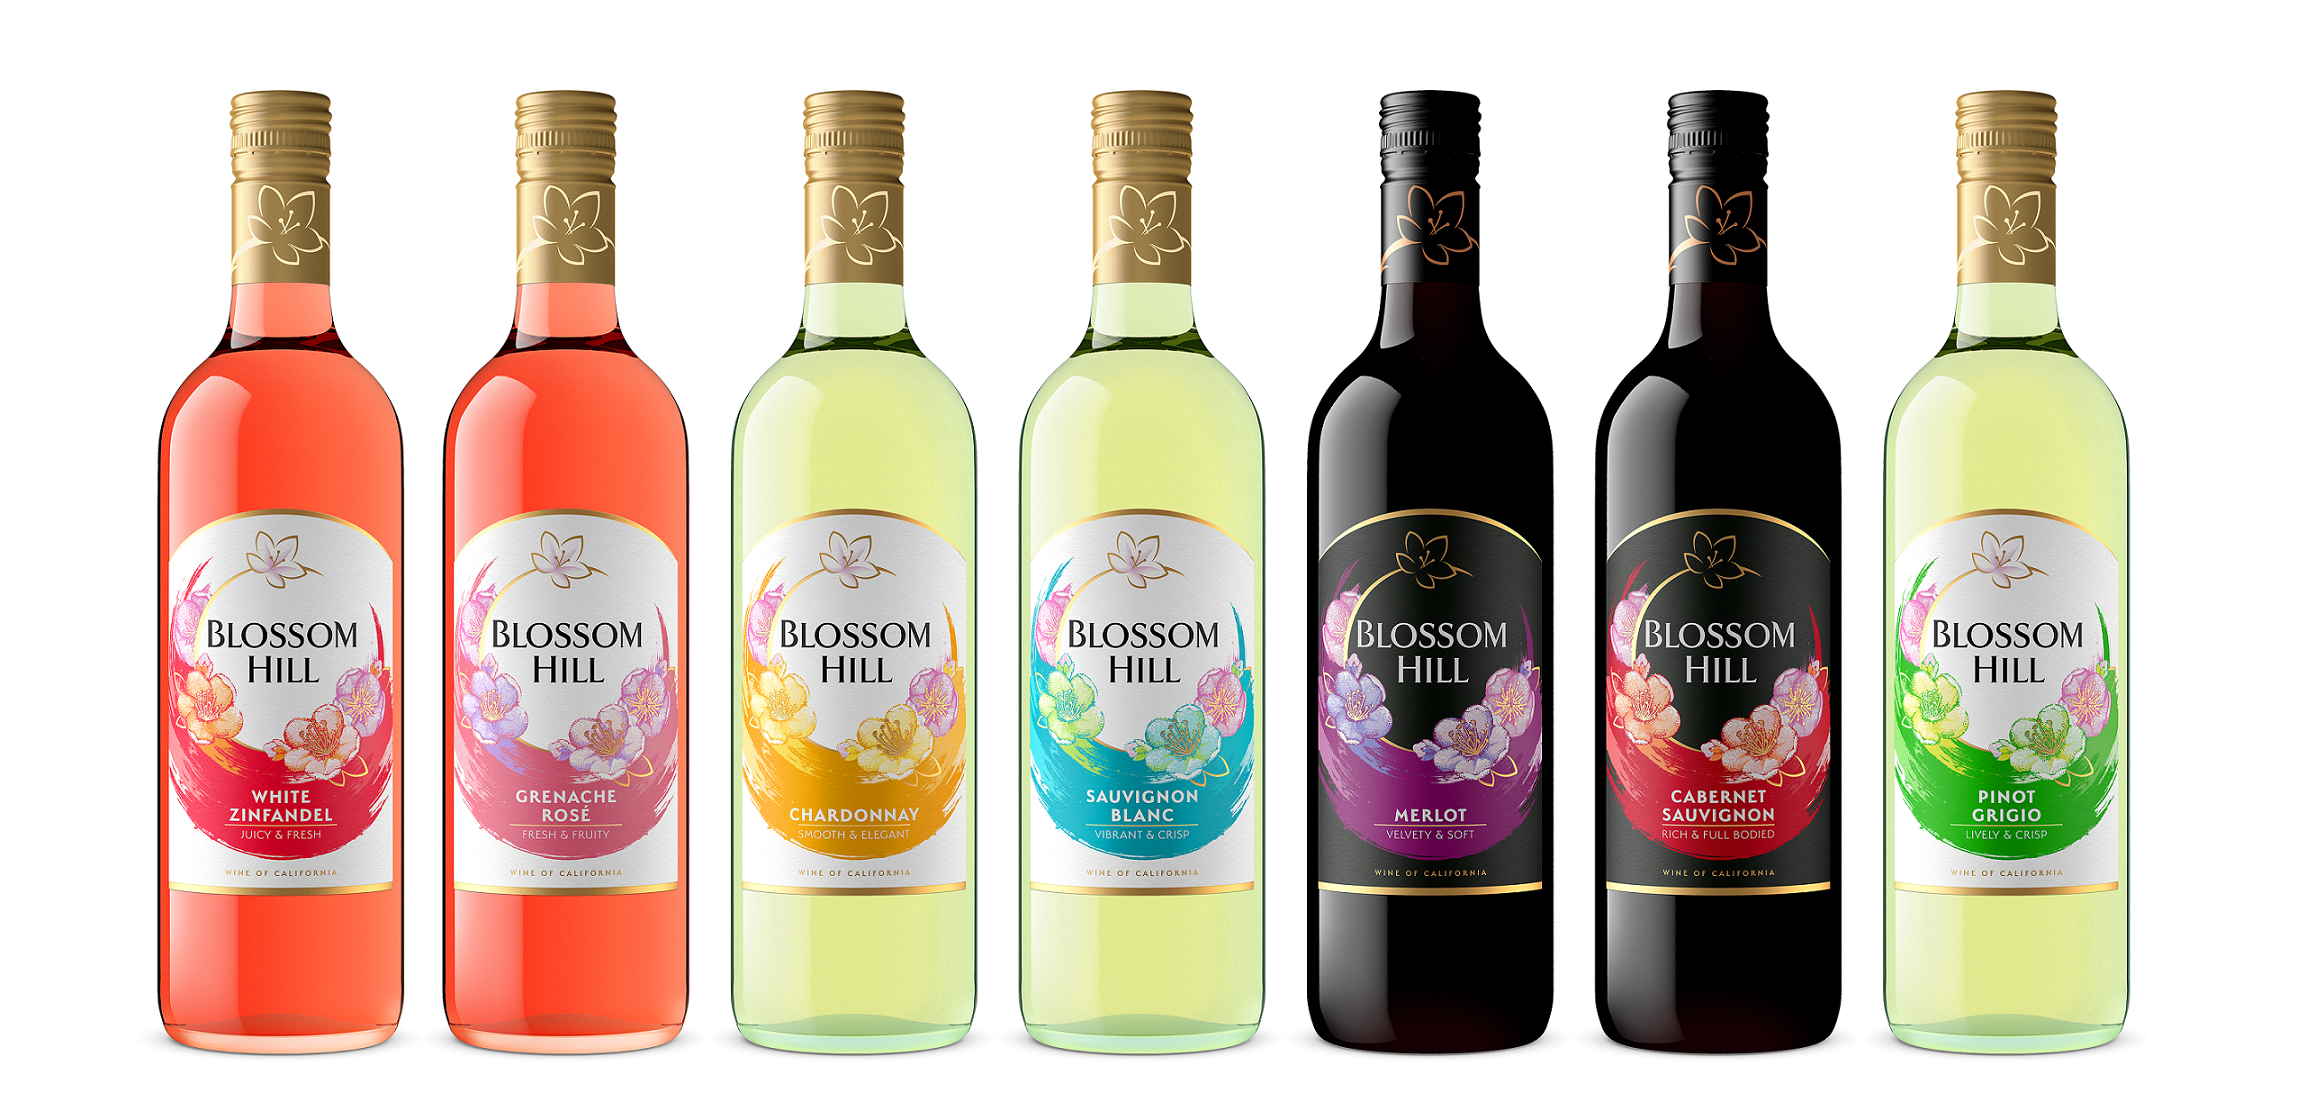 TWE announces new look for Blossom Hill range